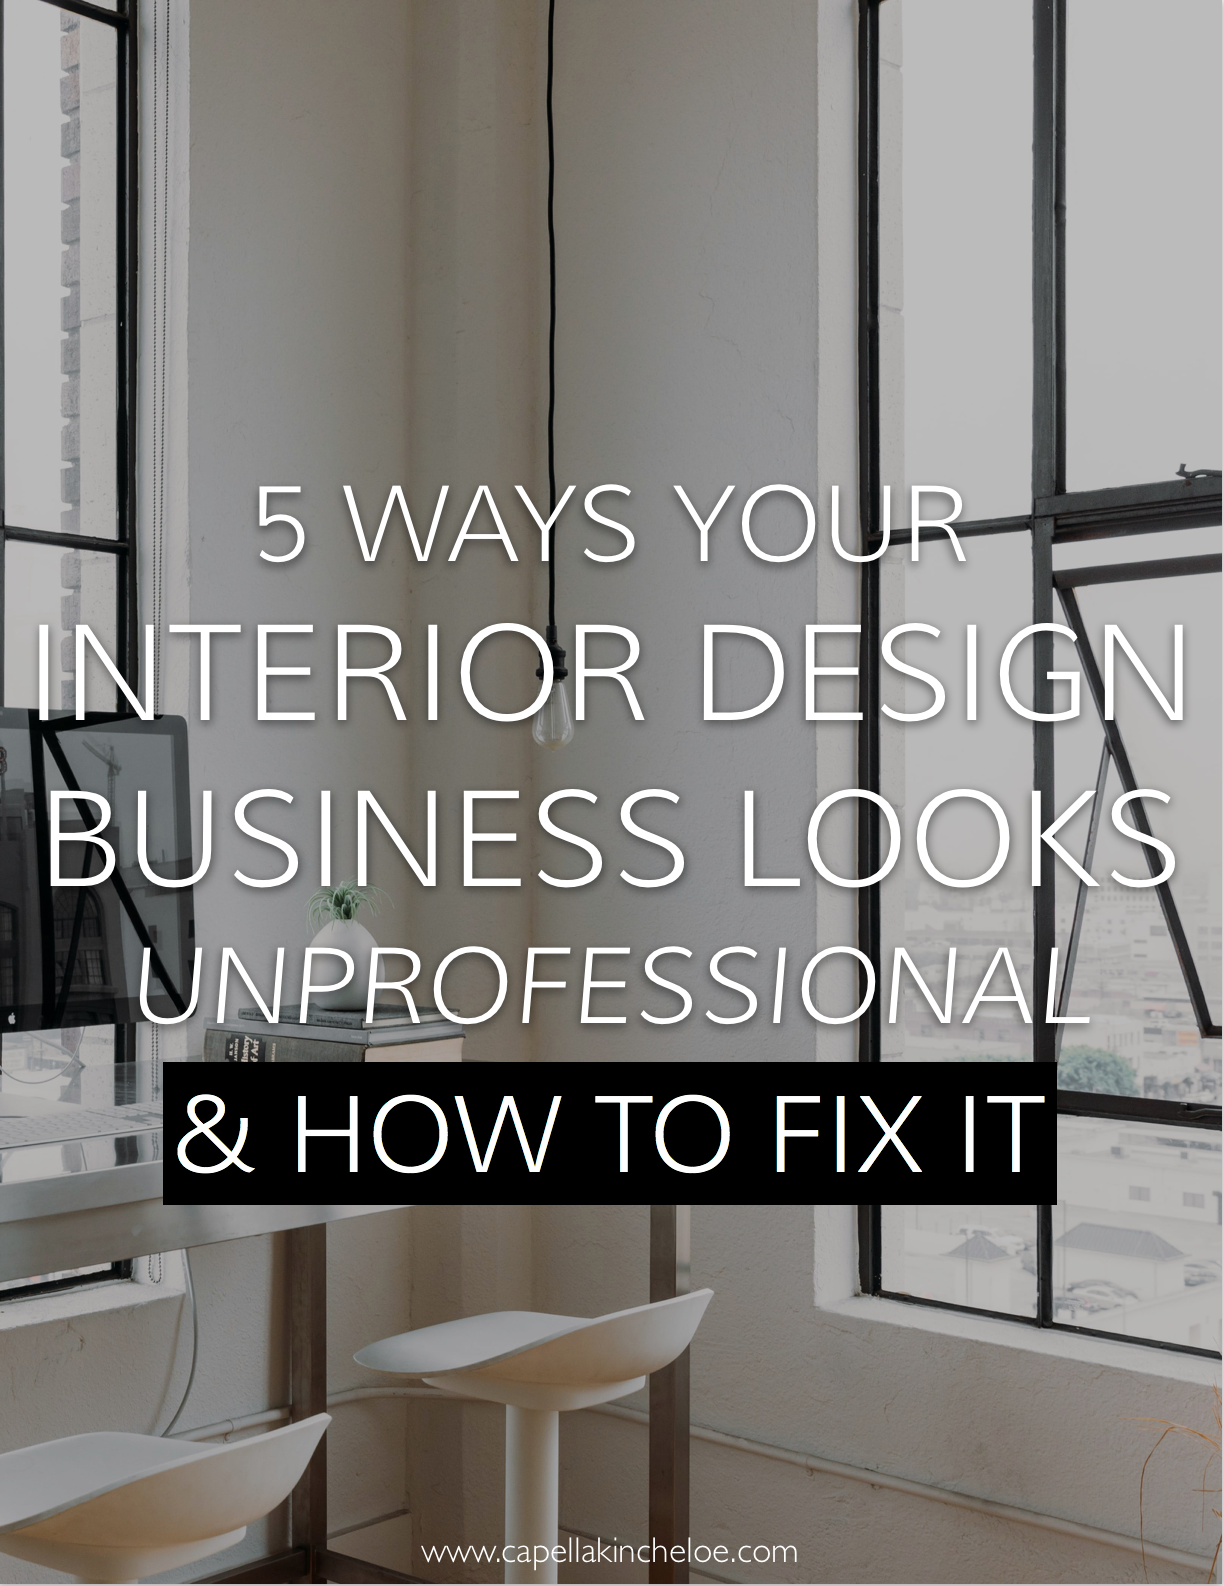 Are you showing clients the best side of your business? Or is it sending a different message? #interiordesignbusiness #cktradesecrets